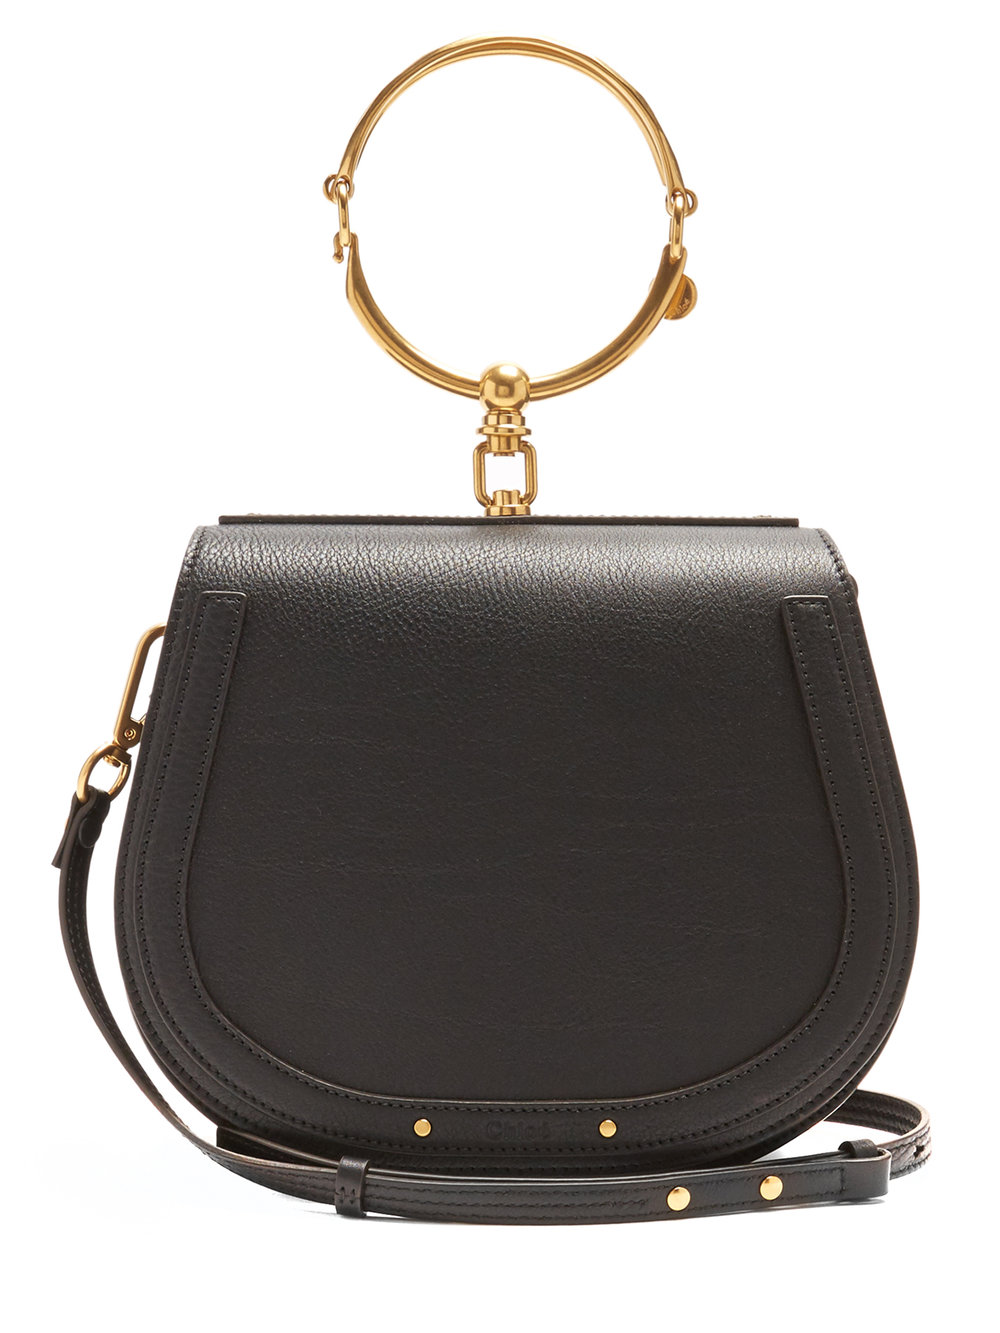 Chloe Nile medium leather cross-body bag